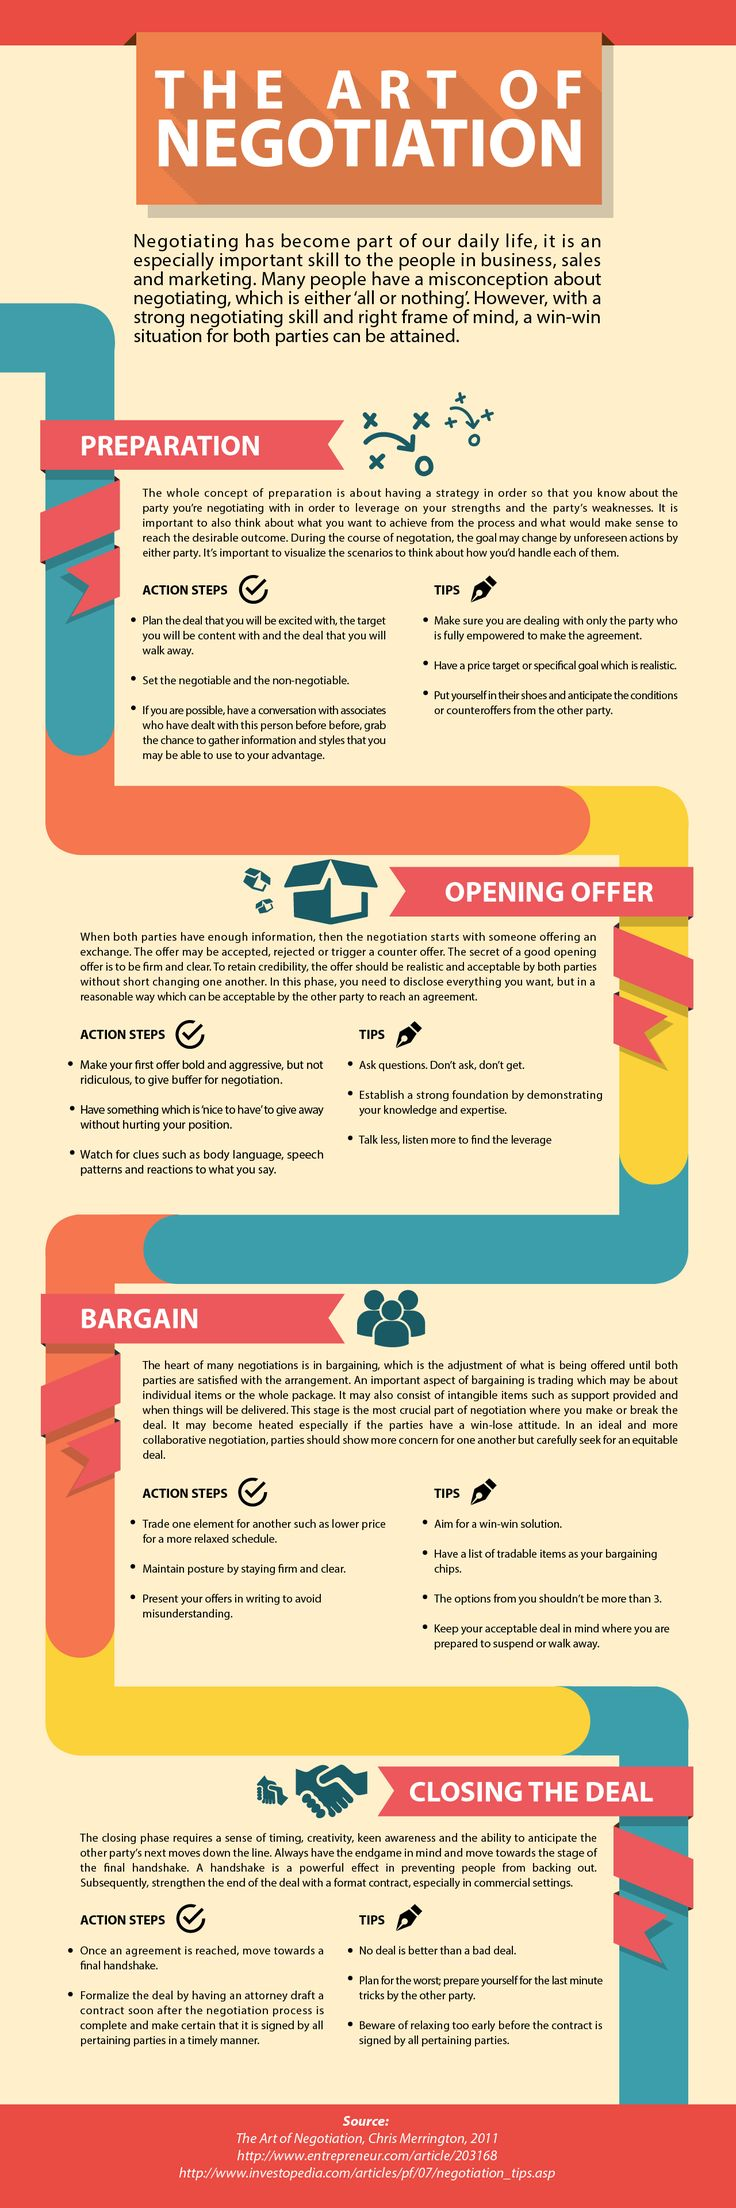 Infographic: The Art of Negotiation from www.JimPerson.com